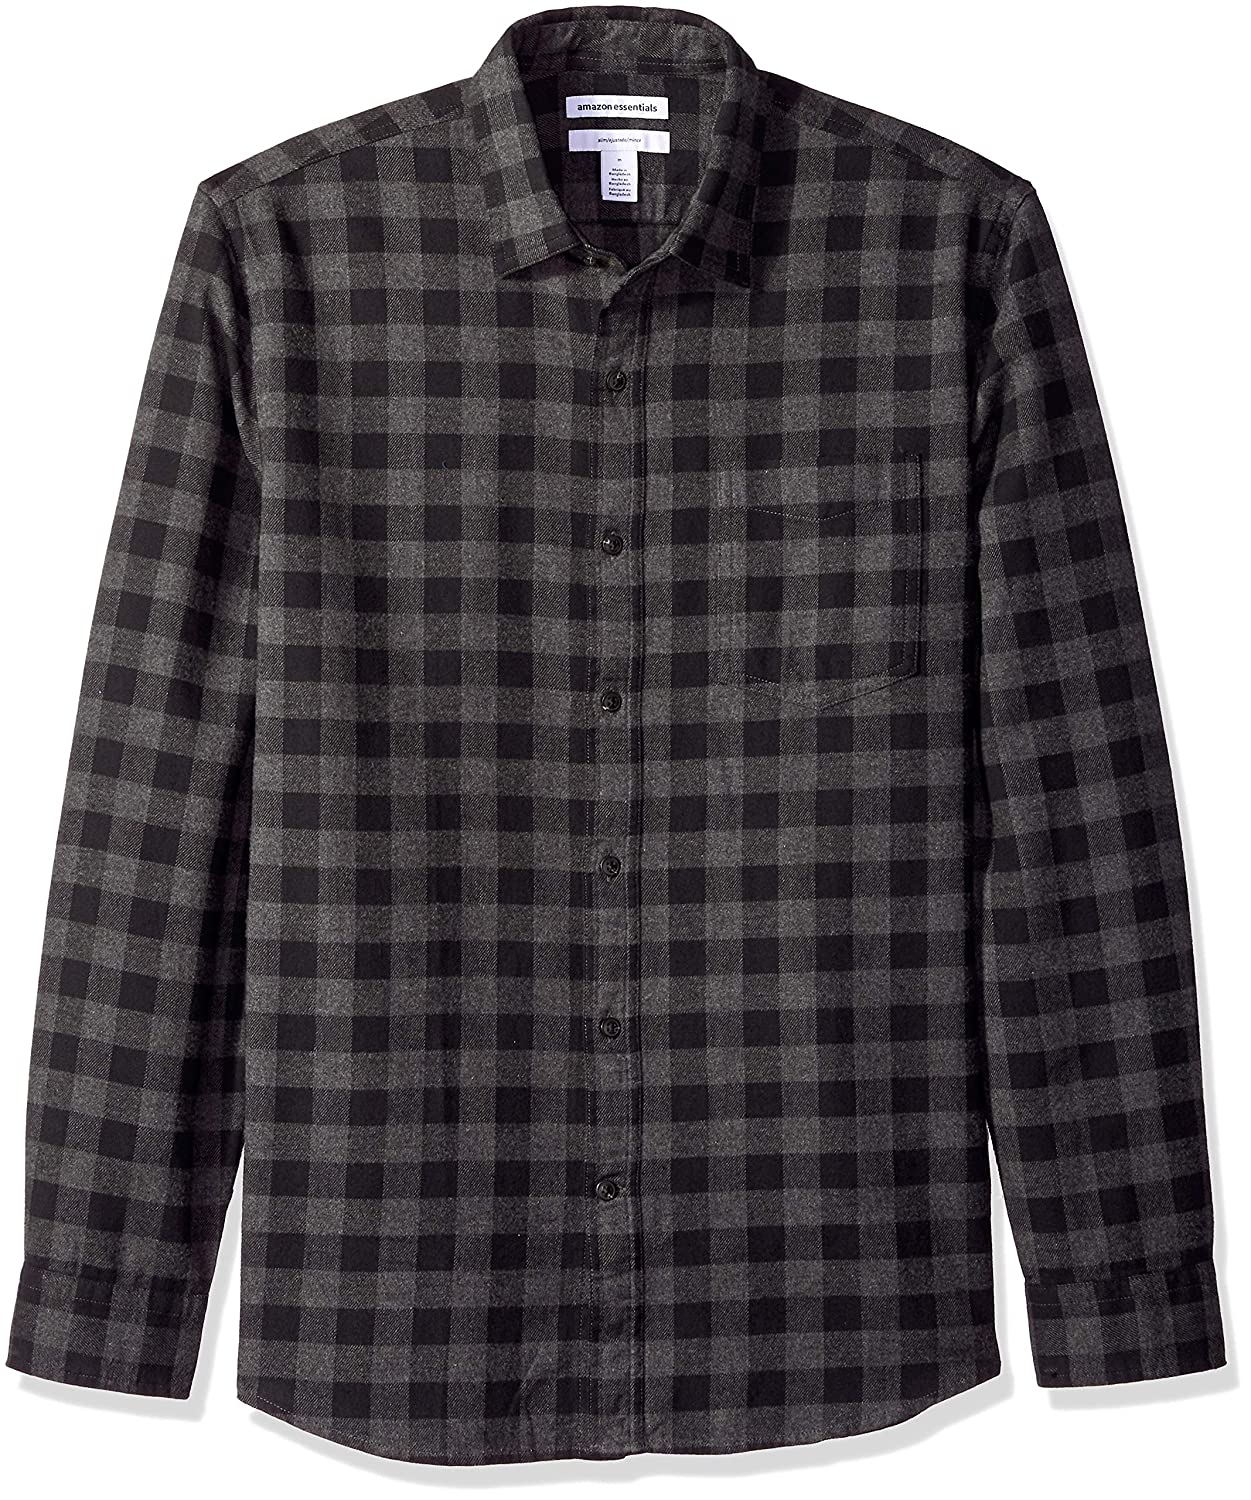 TALLA US XS (EU XS). Amazon Essentials Slim-fit Long-sleeve Plaid Flannel Shirt, Camisa abotonada para Hombre